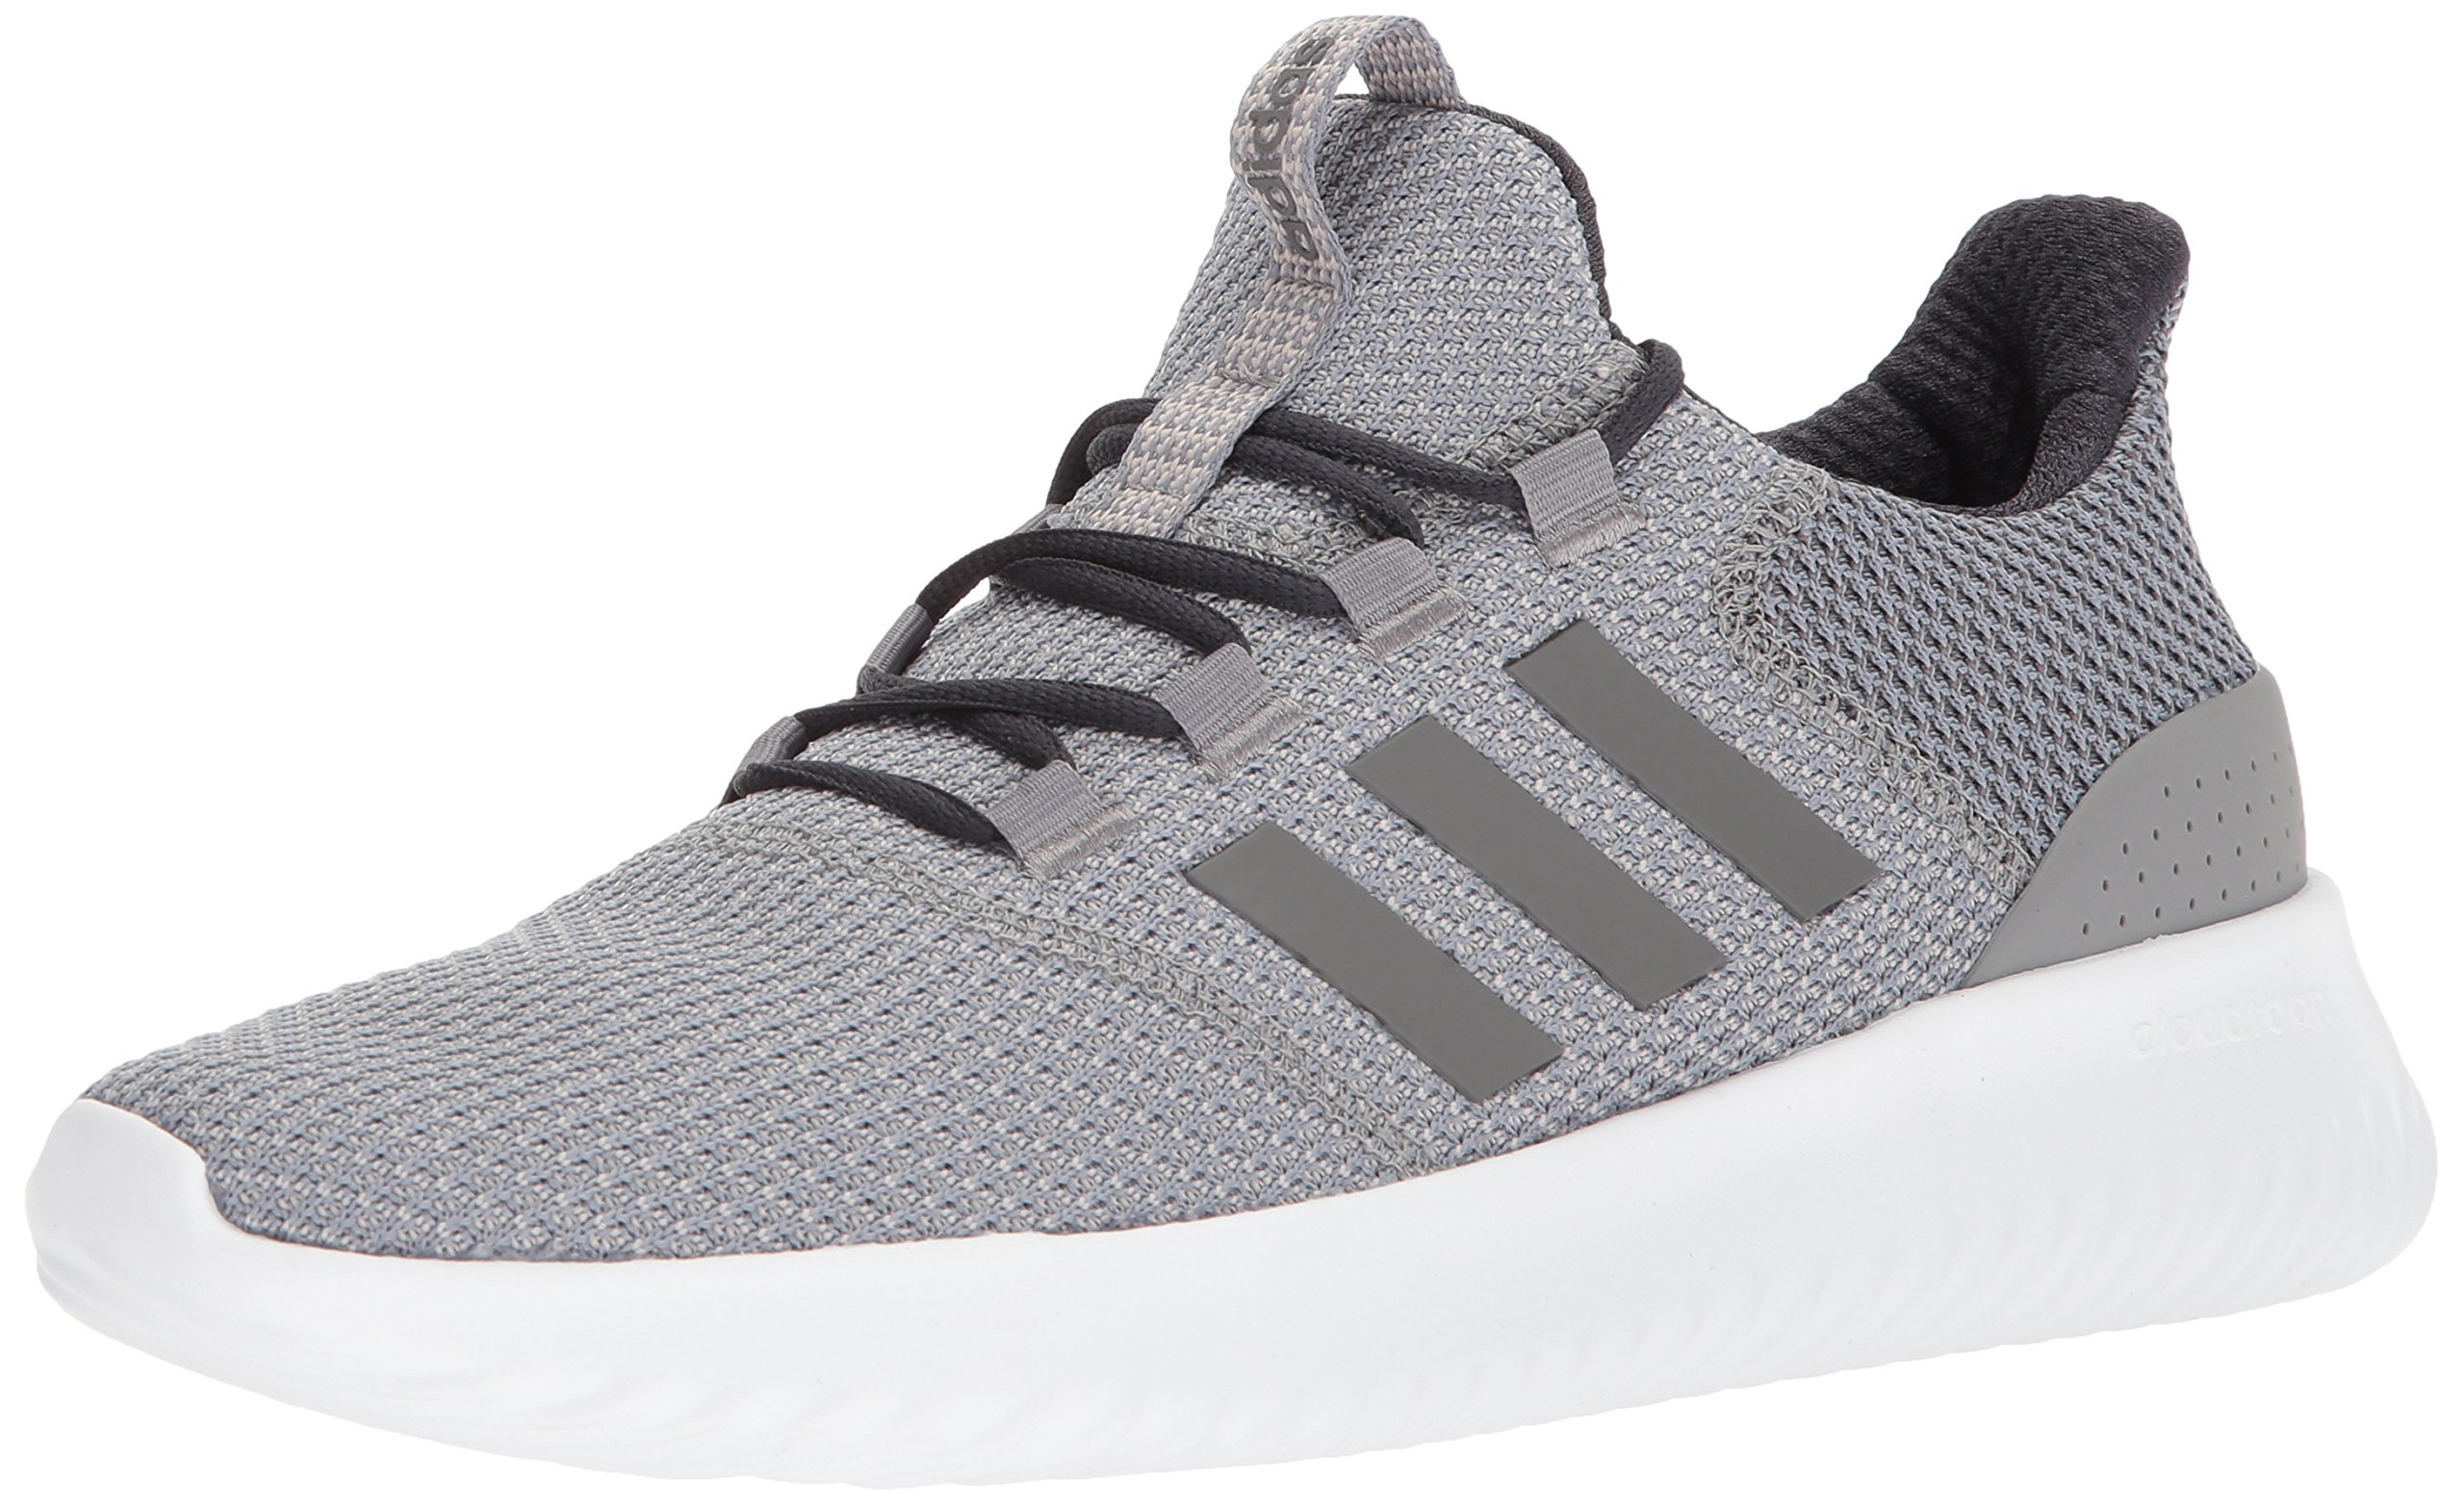 save off 9bf8d 6d1bb Galleon - Adidas Men s Cloudfoam Ultimate Sneaker, Grey Three Fabric, Grey  Four Fabric, Carbon, 8.5 M US